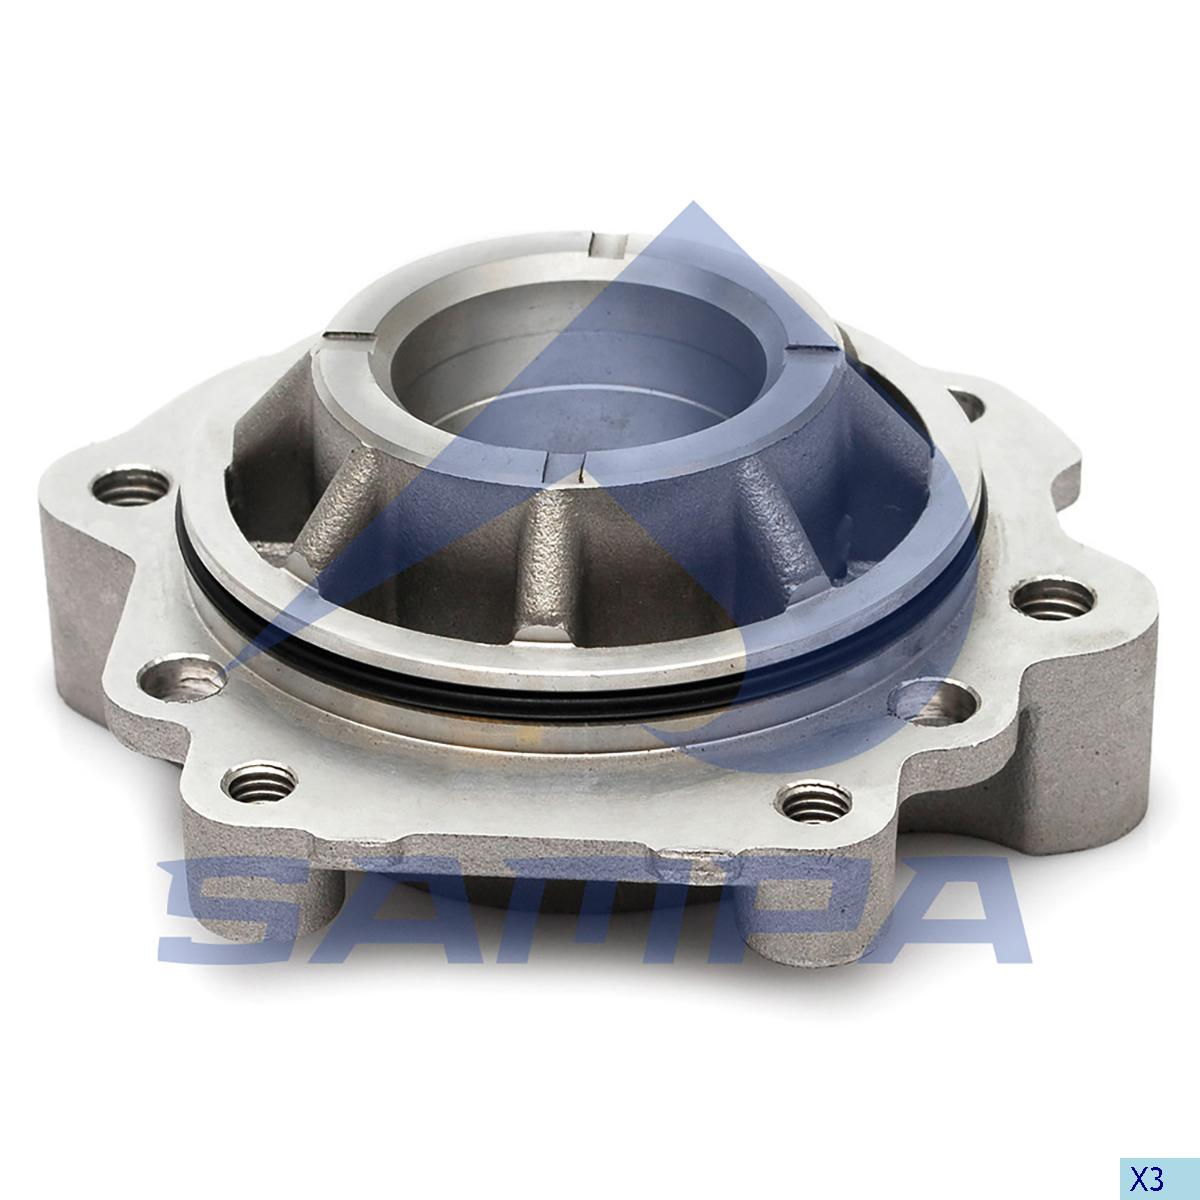 Cover, Cylinder Block, Iveco, Compressed Air System